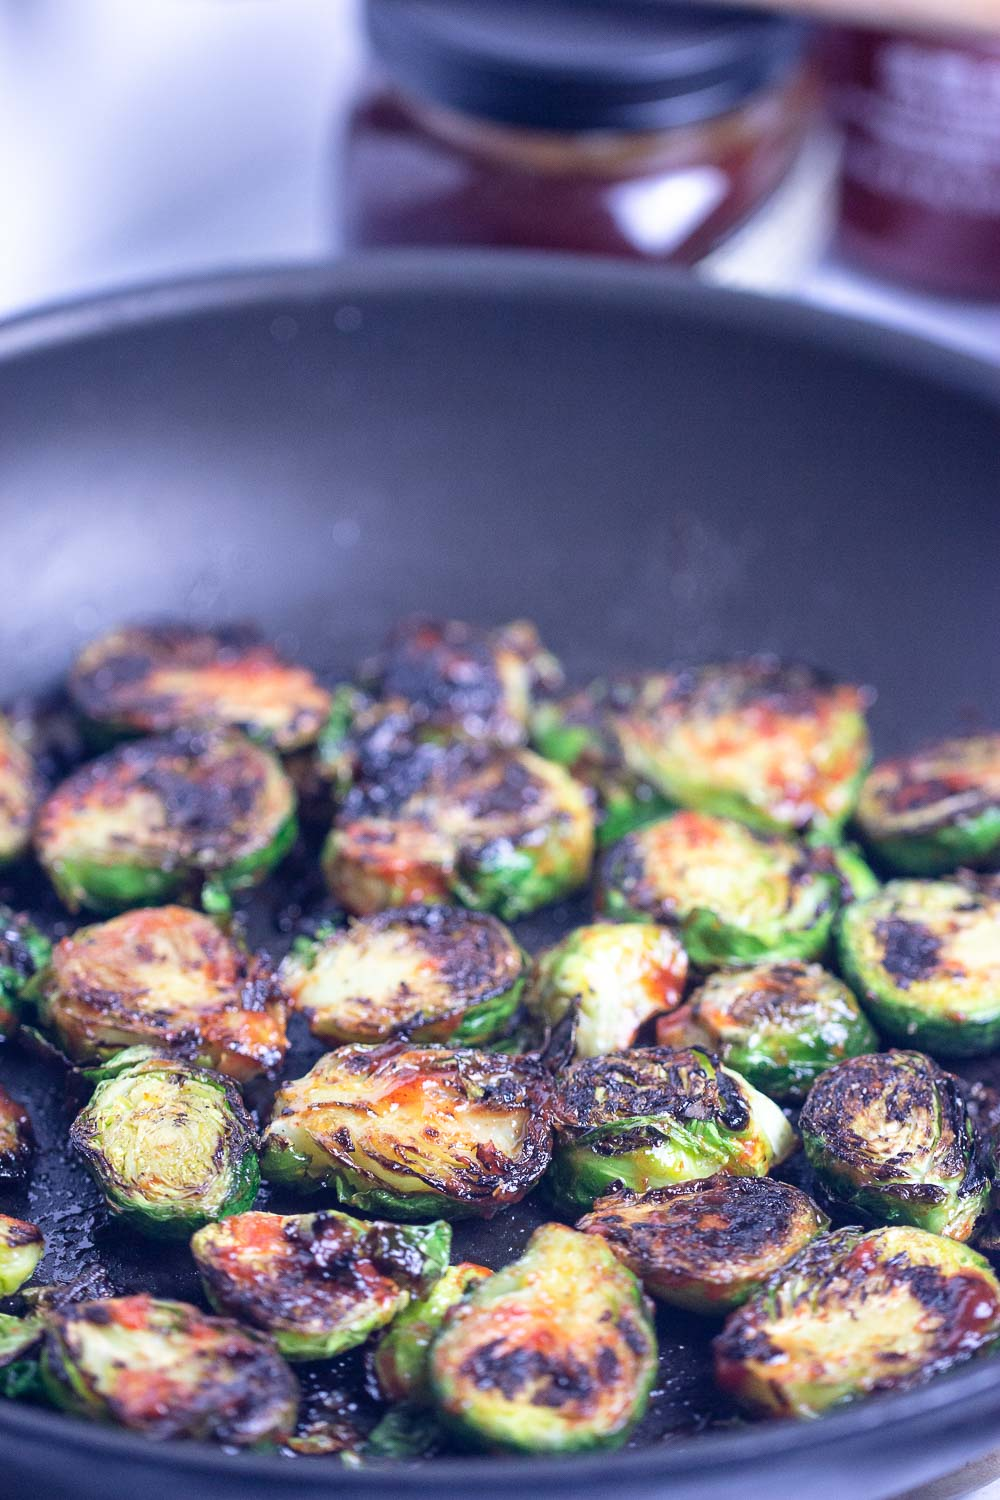 These Honey Sriracha Brussels Sprouts make an excellent side dish — sweet and fiery at the same time!